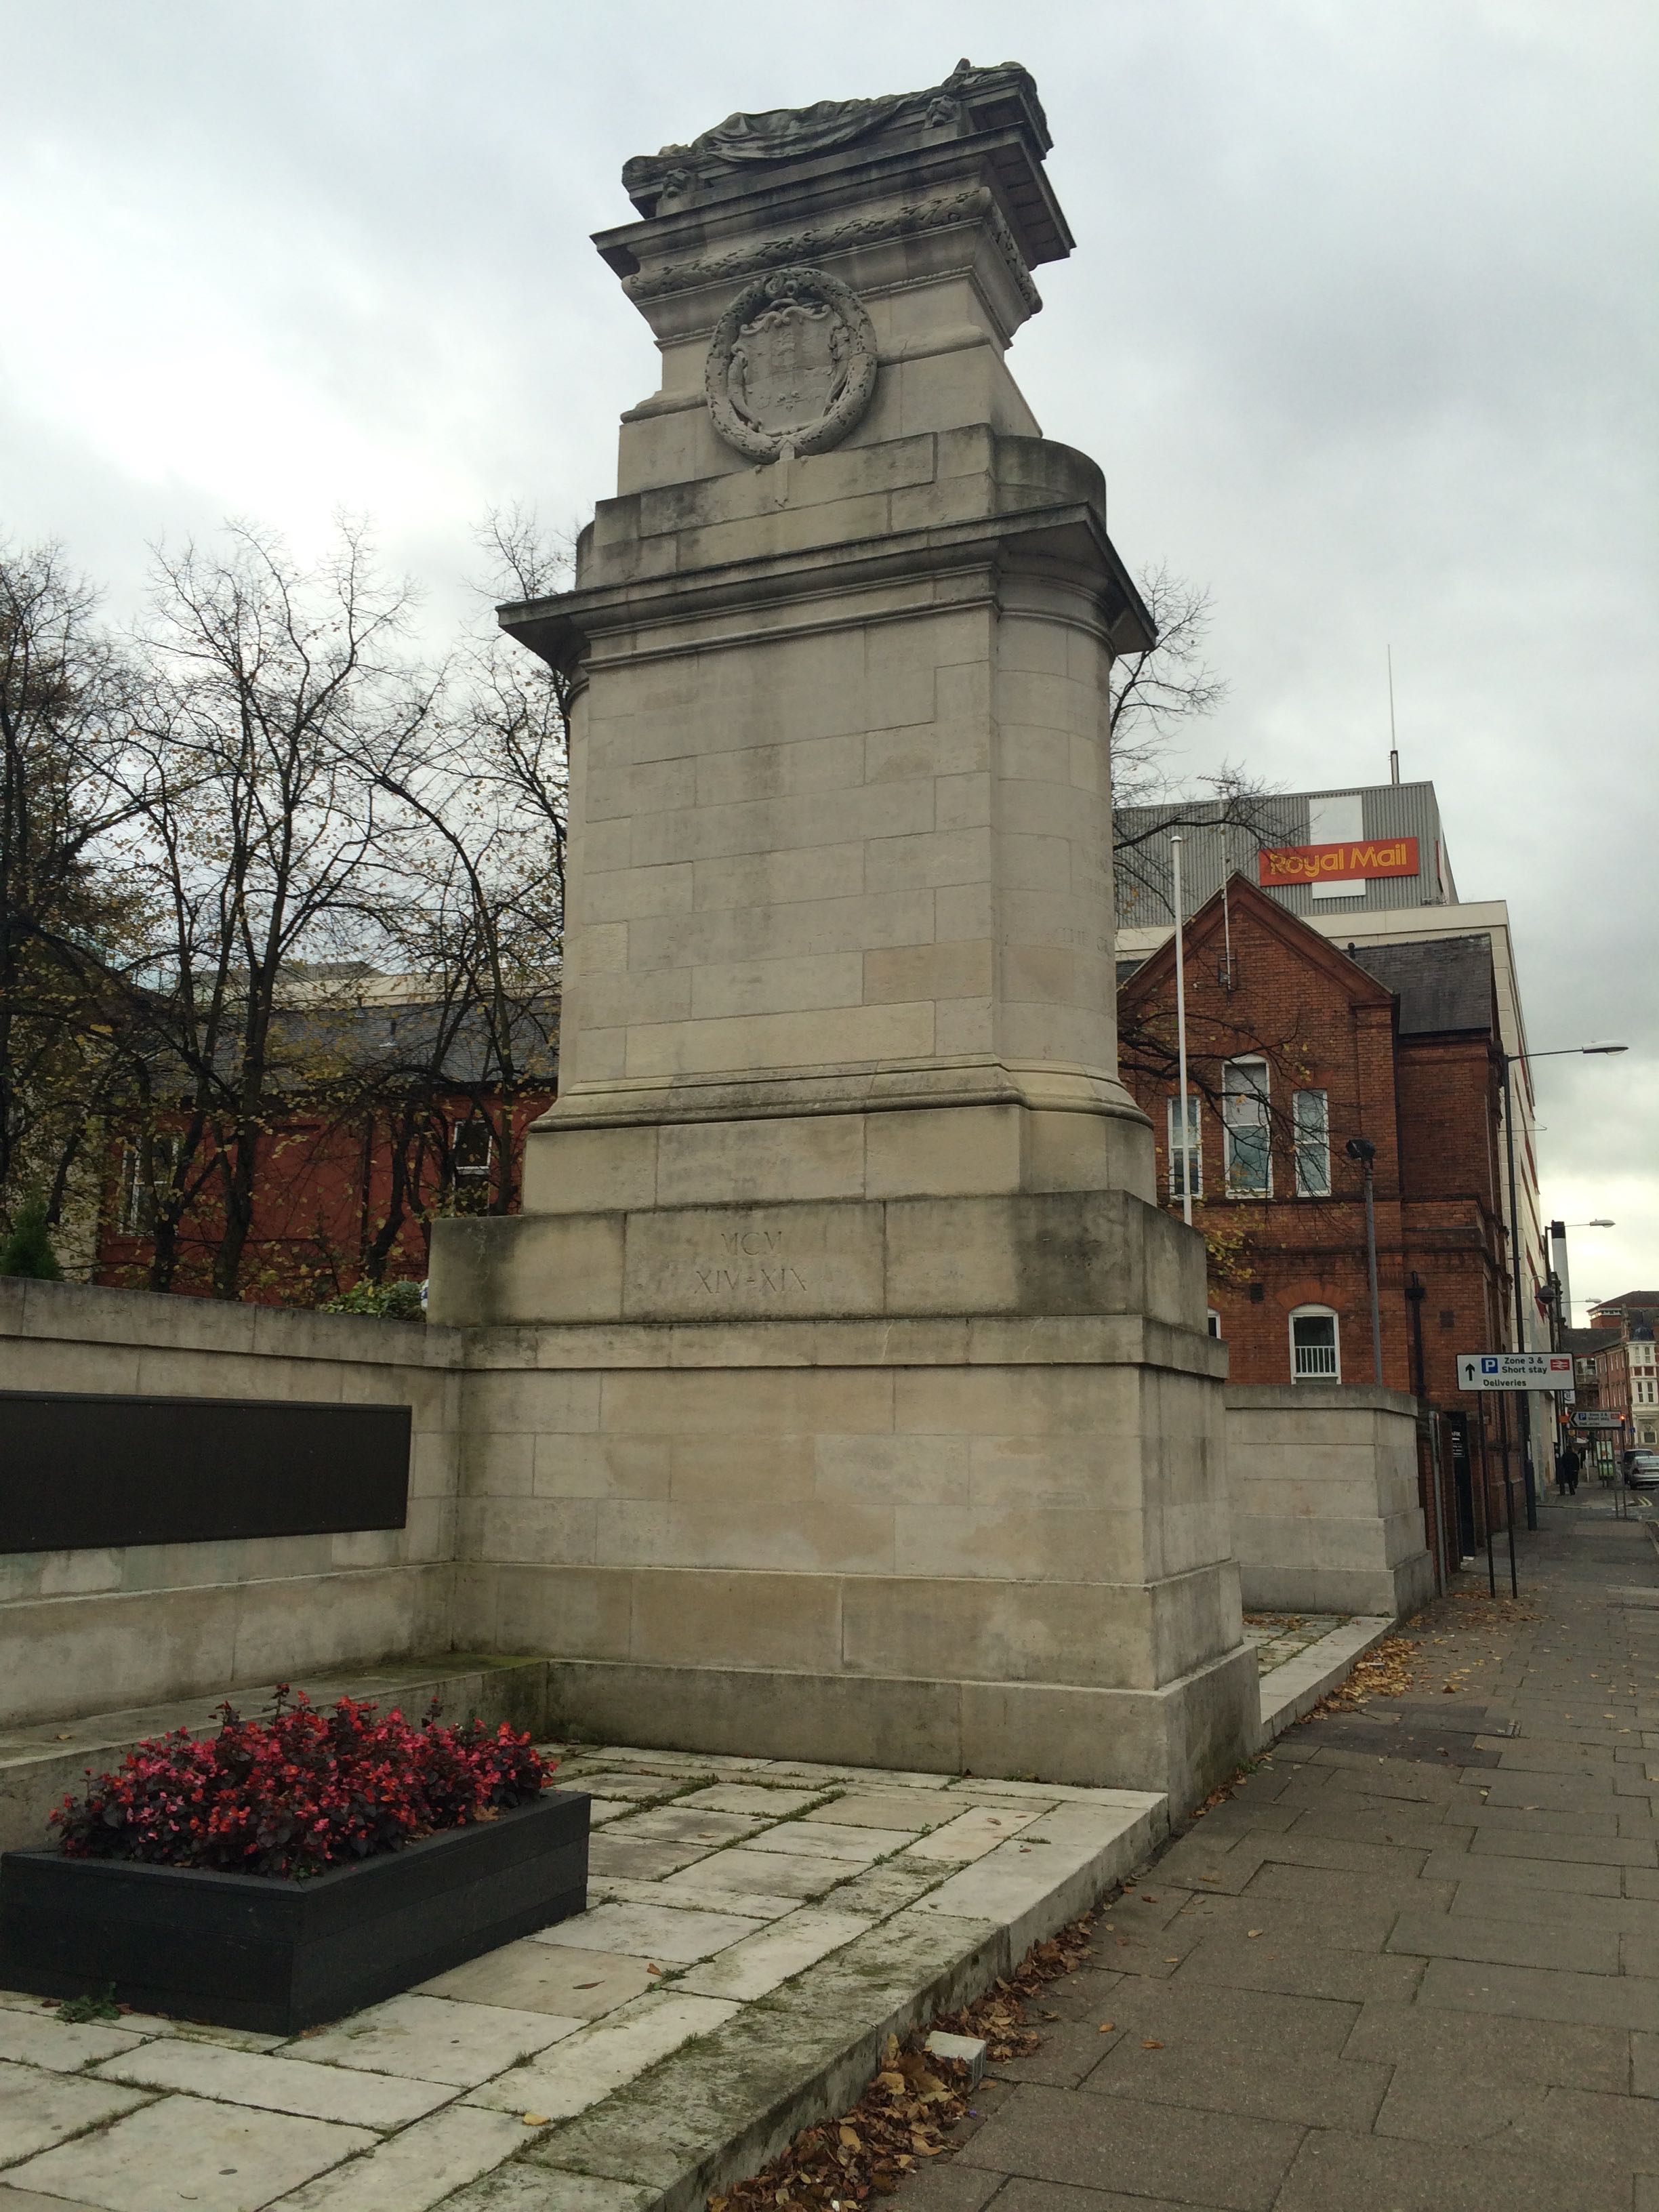 The Midland Railway War Memorial on Midland Road, Derby with poppy wreaths at its base